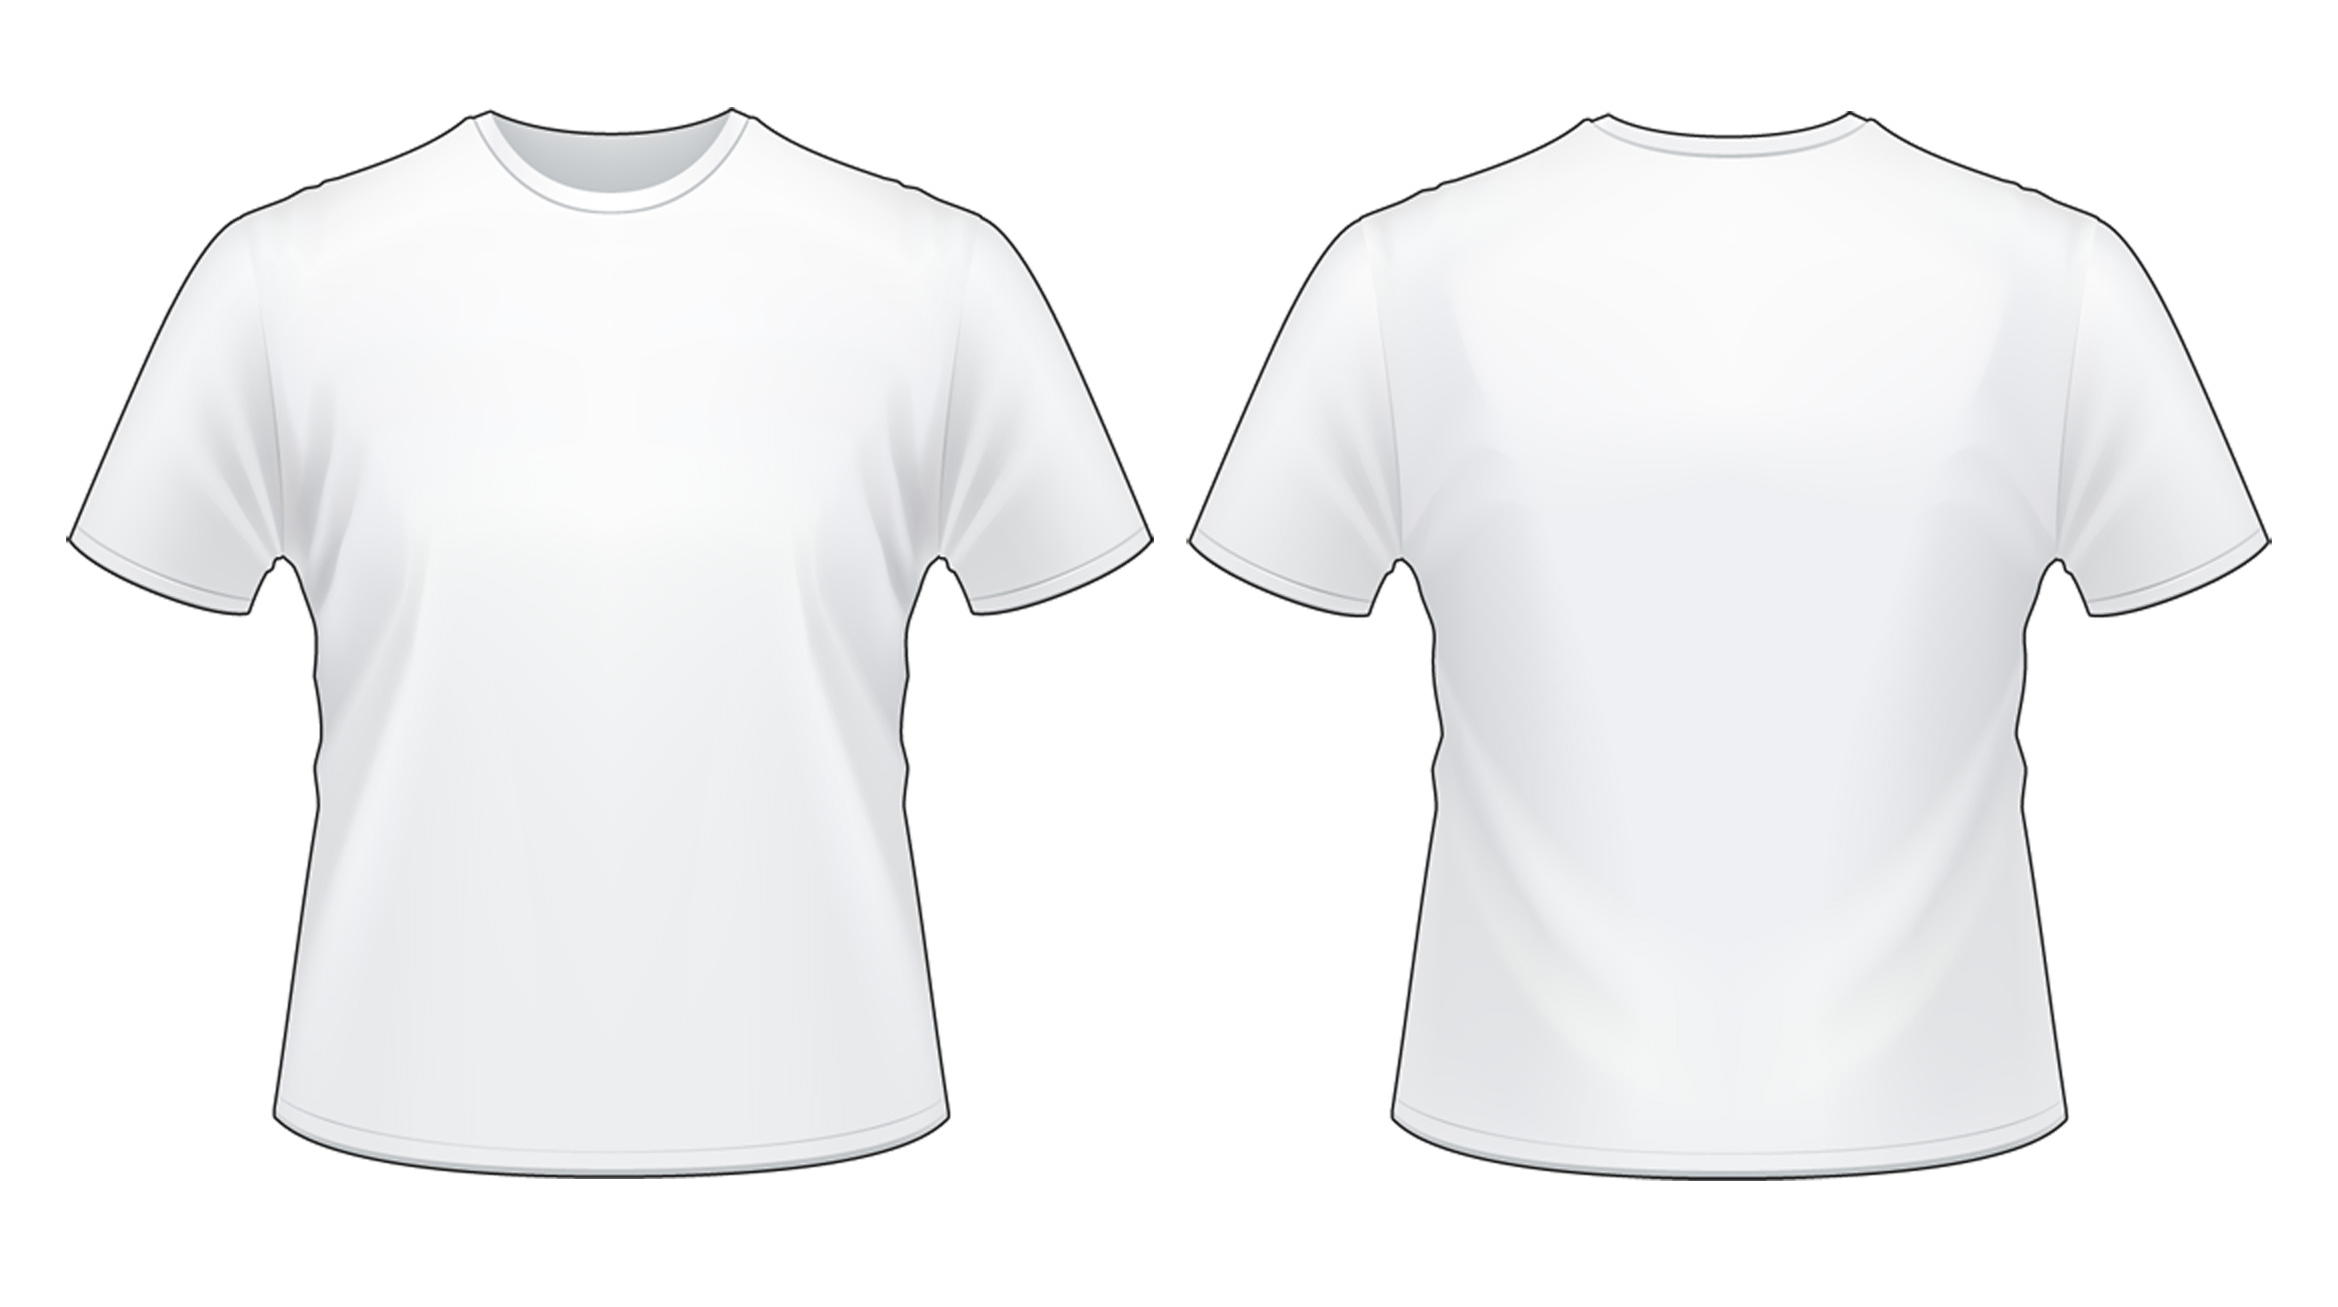 View T Shirt Template